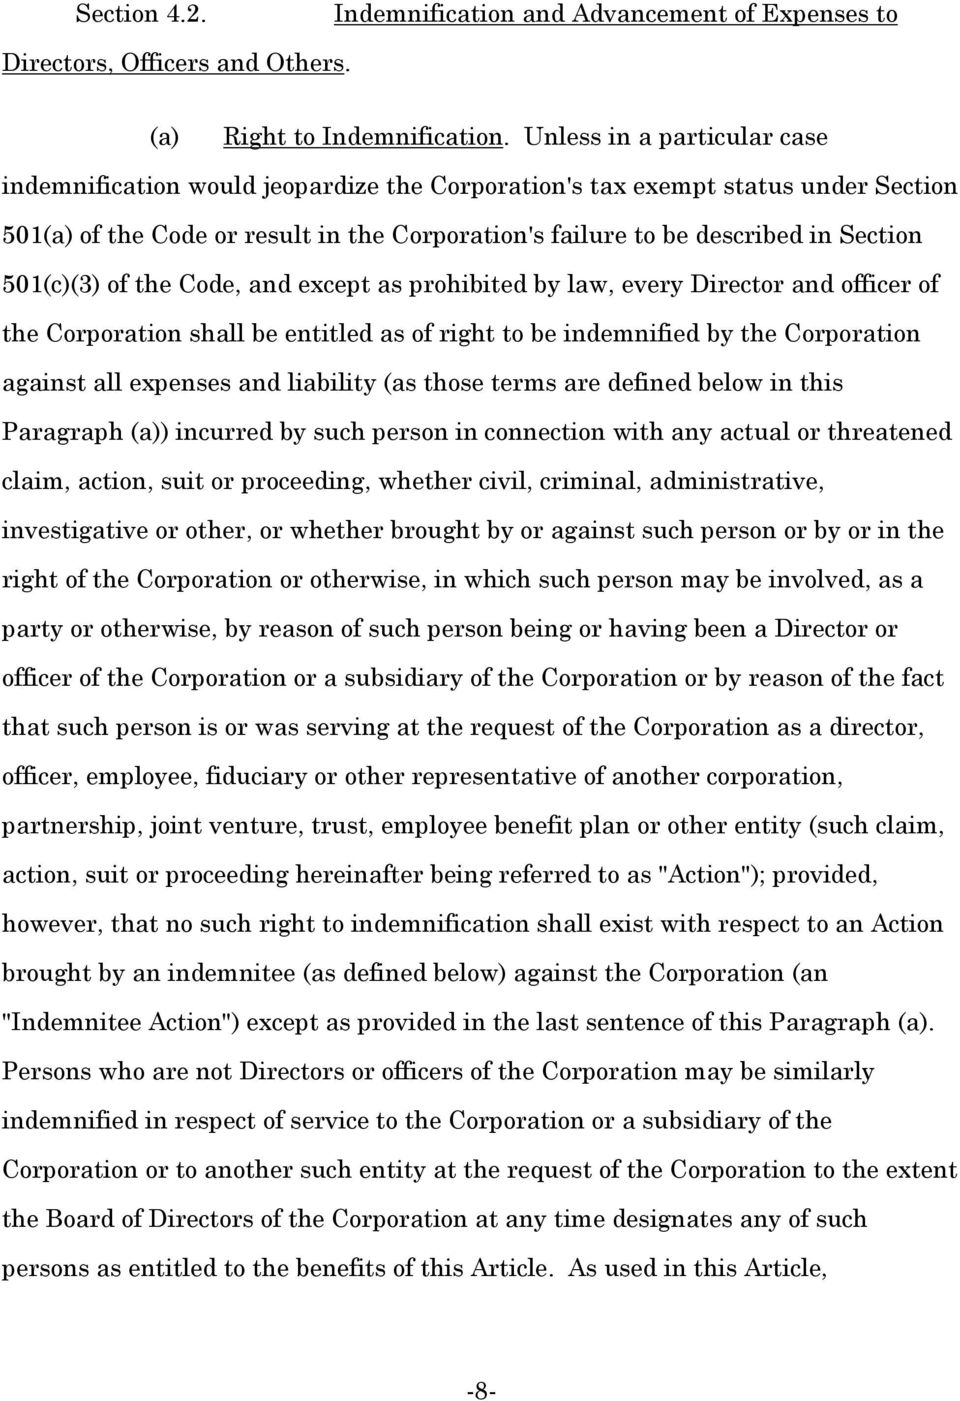 501(c)(3) of the Code, and except as prohibited by law, every Director and officer of the Corporation shall be entitled as of right to be indemnified by the Corporation against all expenses and